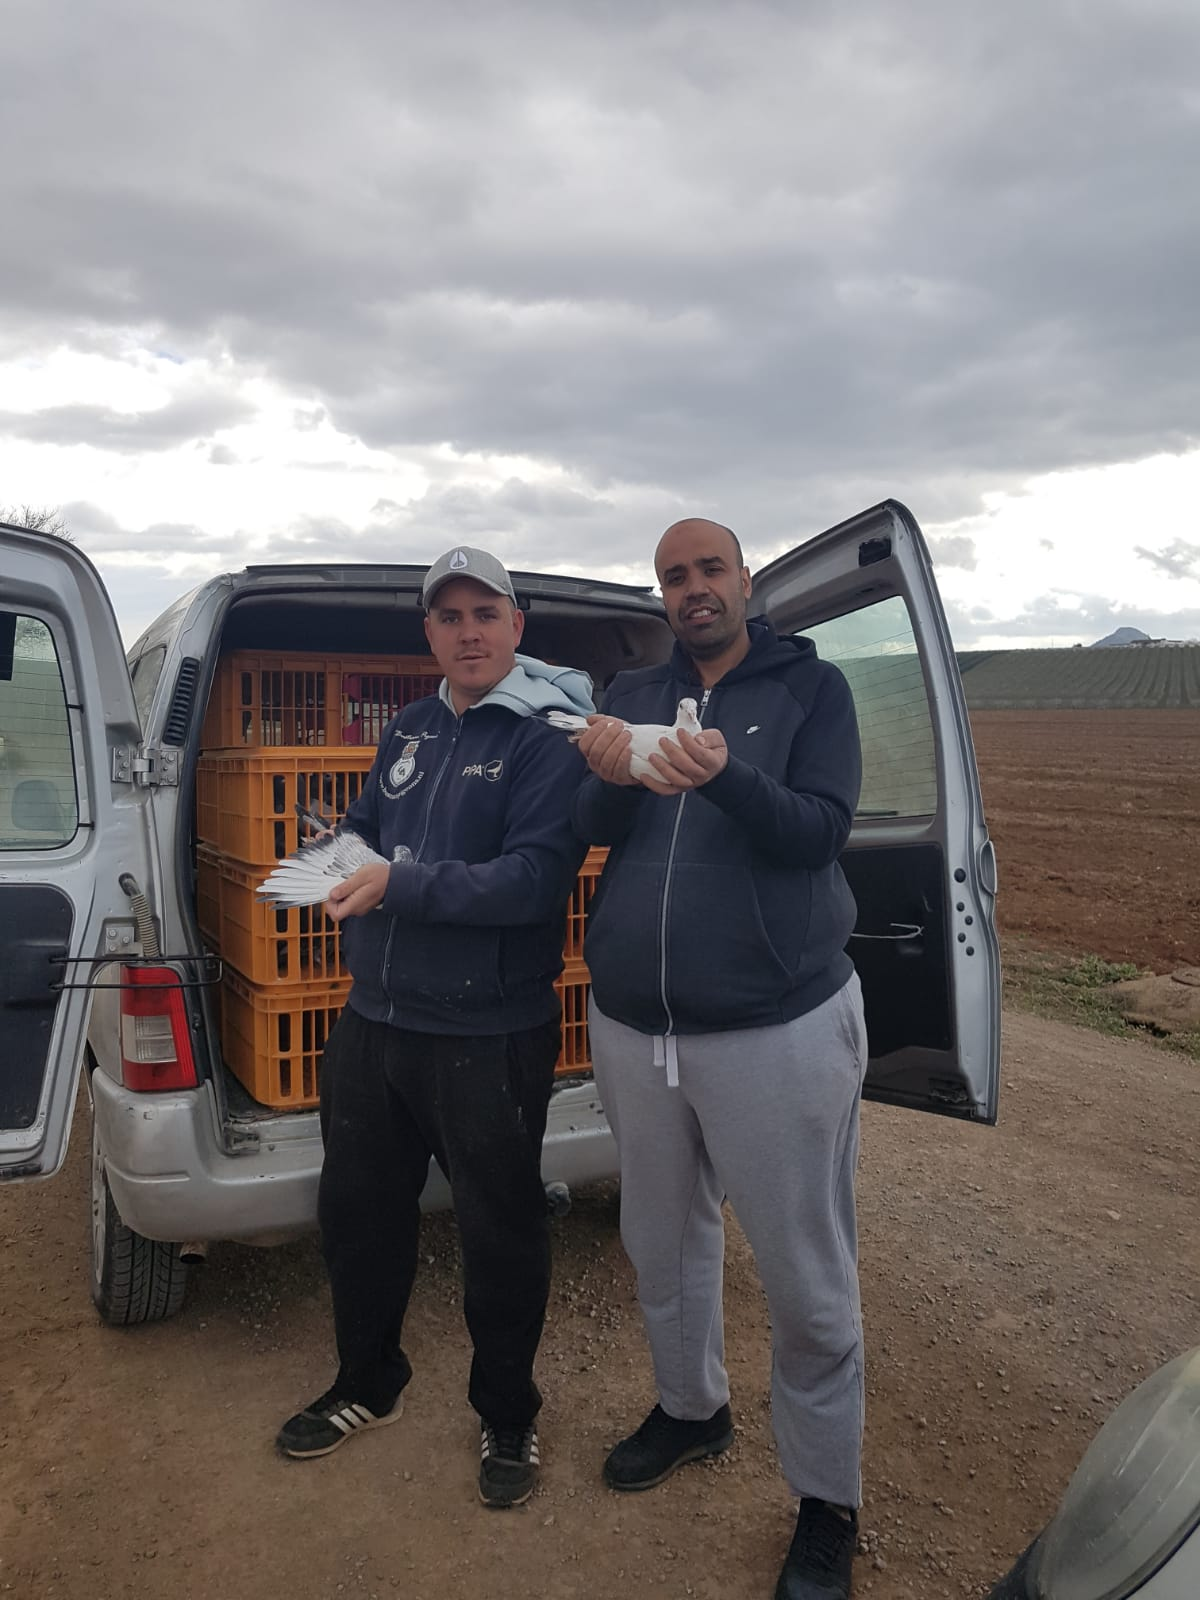 THE FIRST 44 PIGEONS OF TEAM RIDA PALOMAS ARRIVE